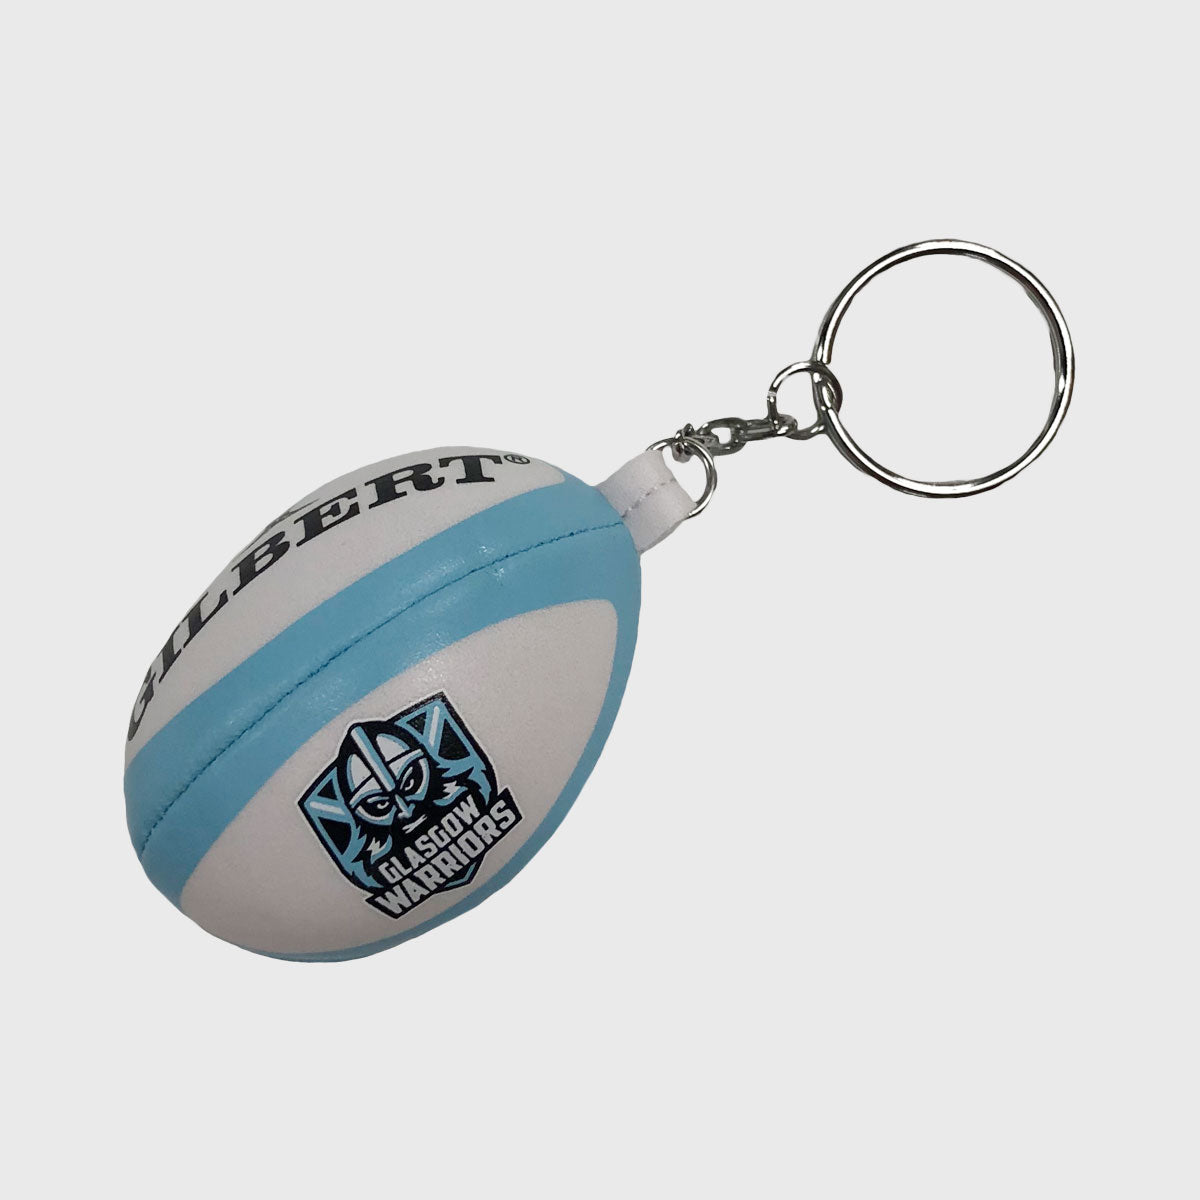 Glasgow Warriors Replica Rugby Ball Keyring 2019/20 - First XV rugbystuff.com